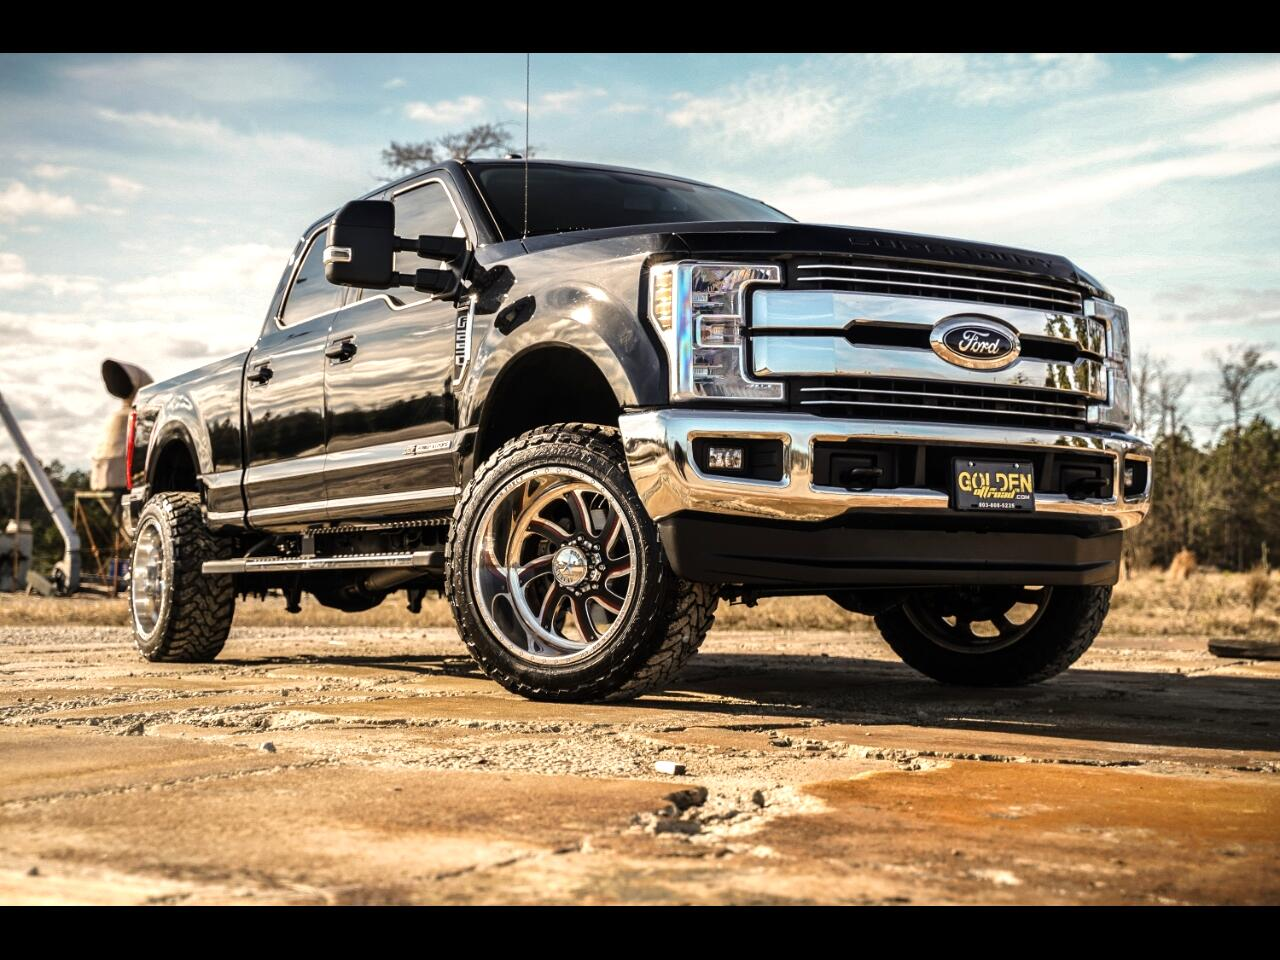 2018 Ford Super Duty F-250 SRW 4wd Crew Cab Lariat, Lifted, American Force Facepl